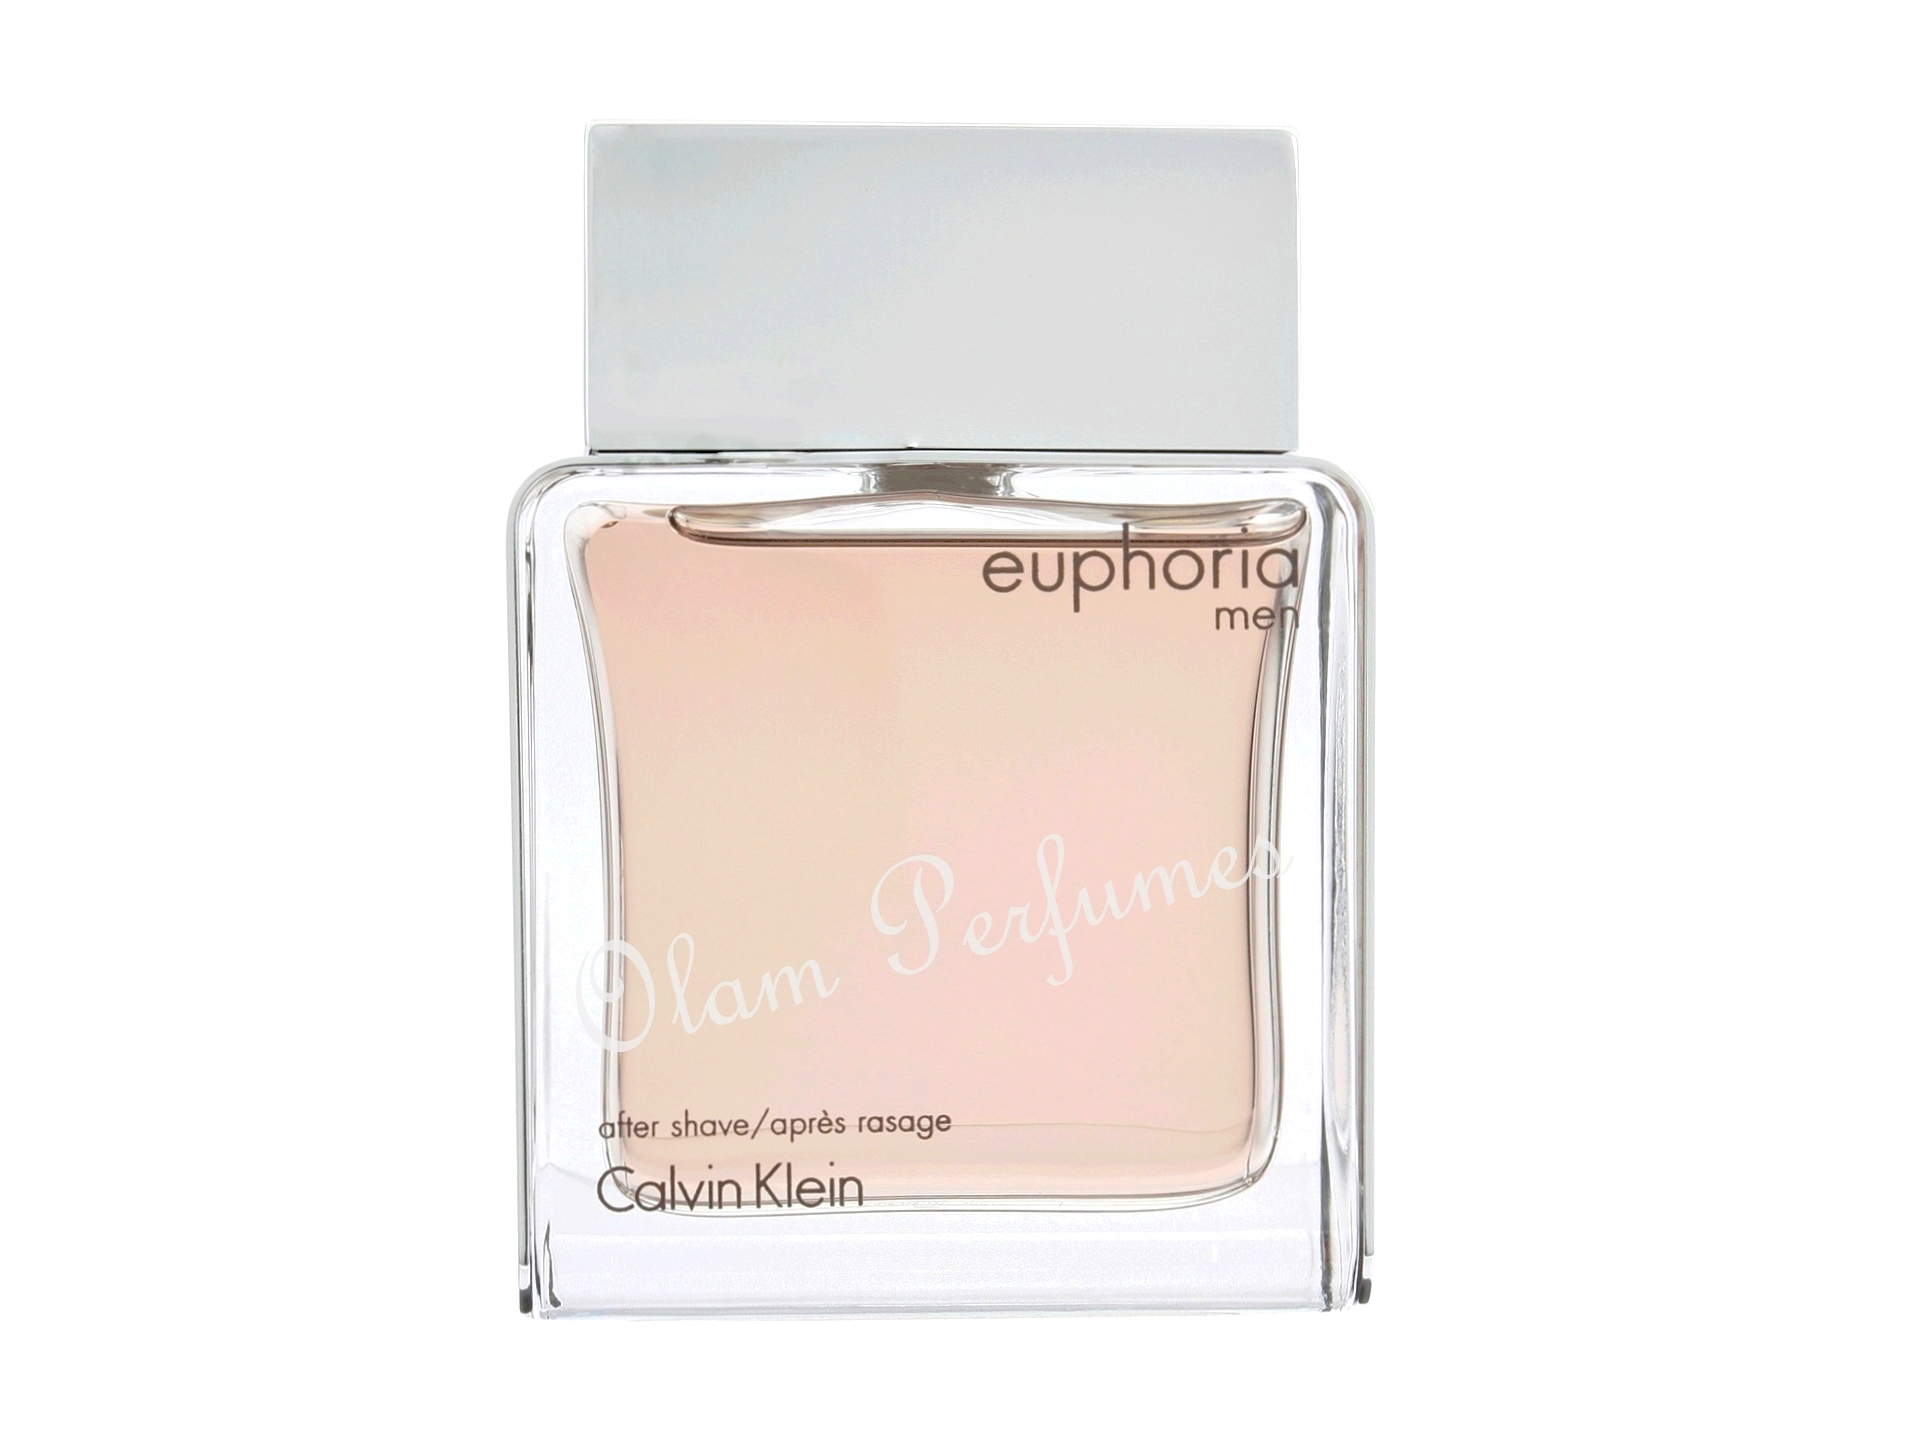 Calvin Klein Euphoria Aftershave 3.4oz 100ml Unboxed